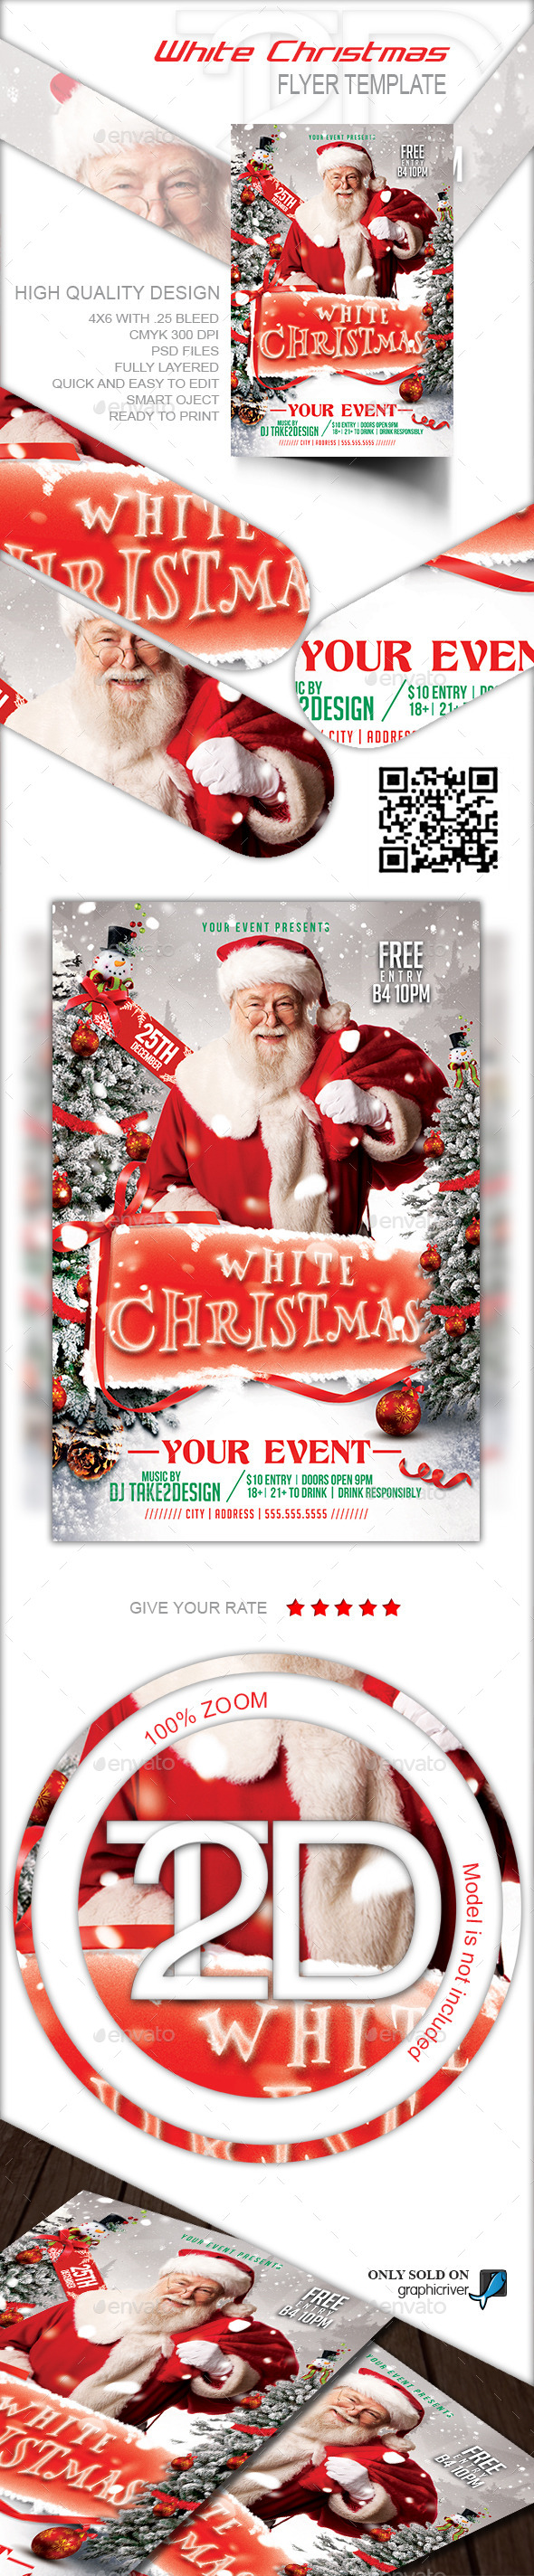 White Christmas Party Flyer - Clubs & Parties Events